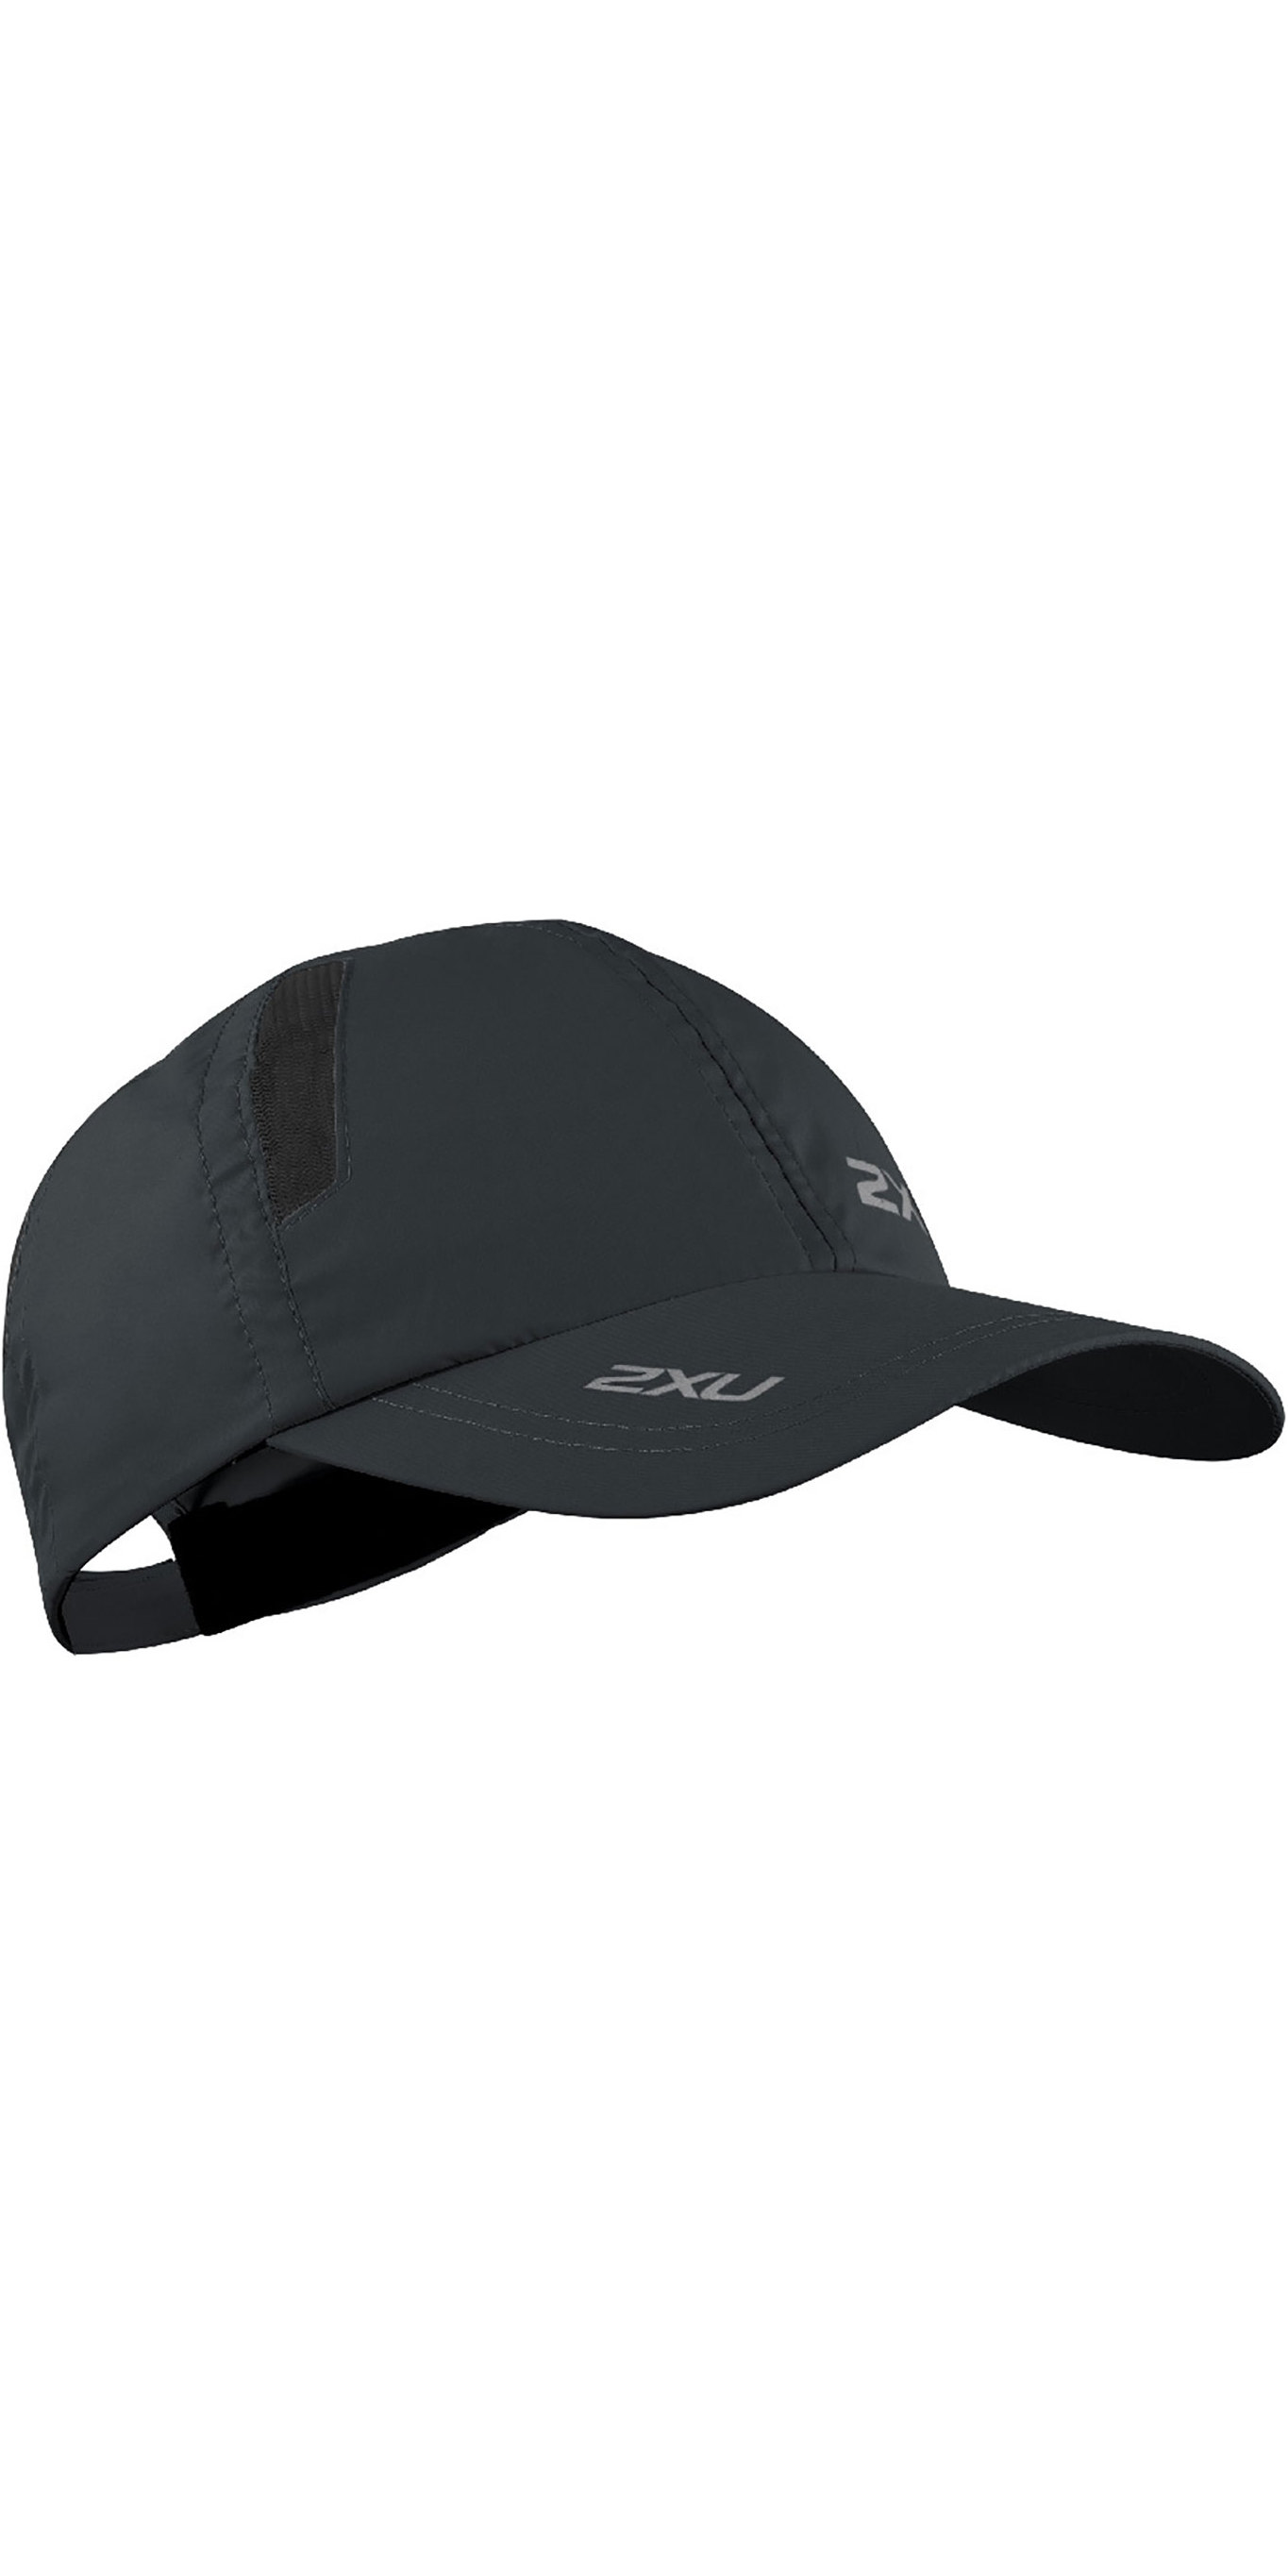 2019 2XU Run Cap Black UQ5685f